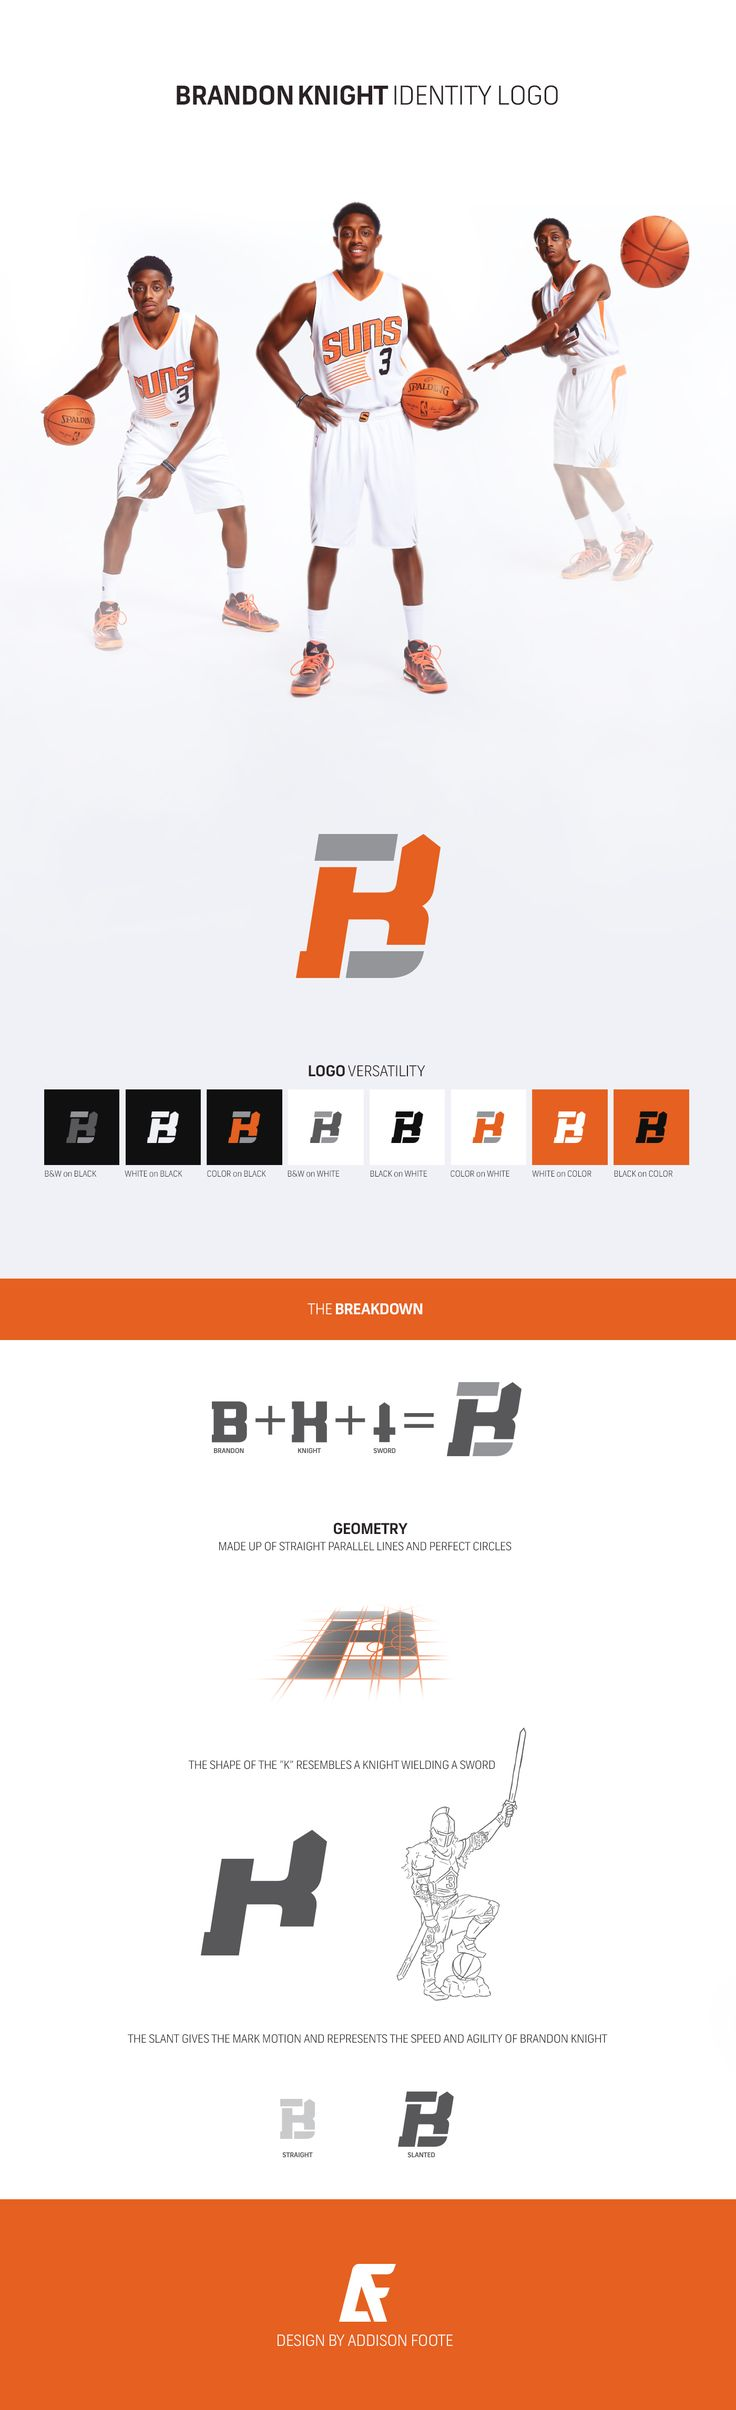 Brandon Knight Personal Identity Logo on Behance